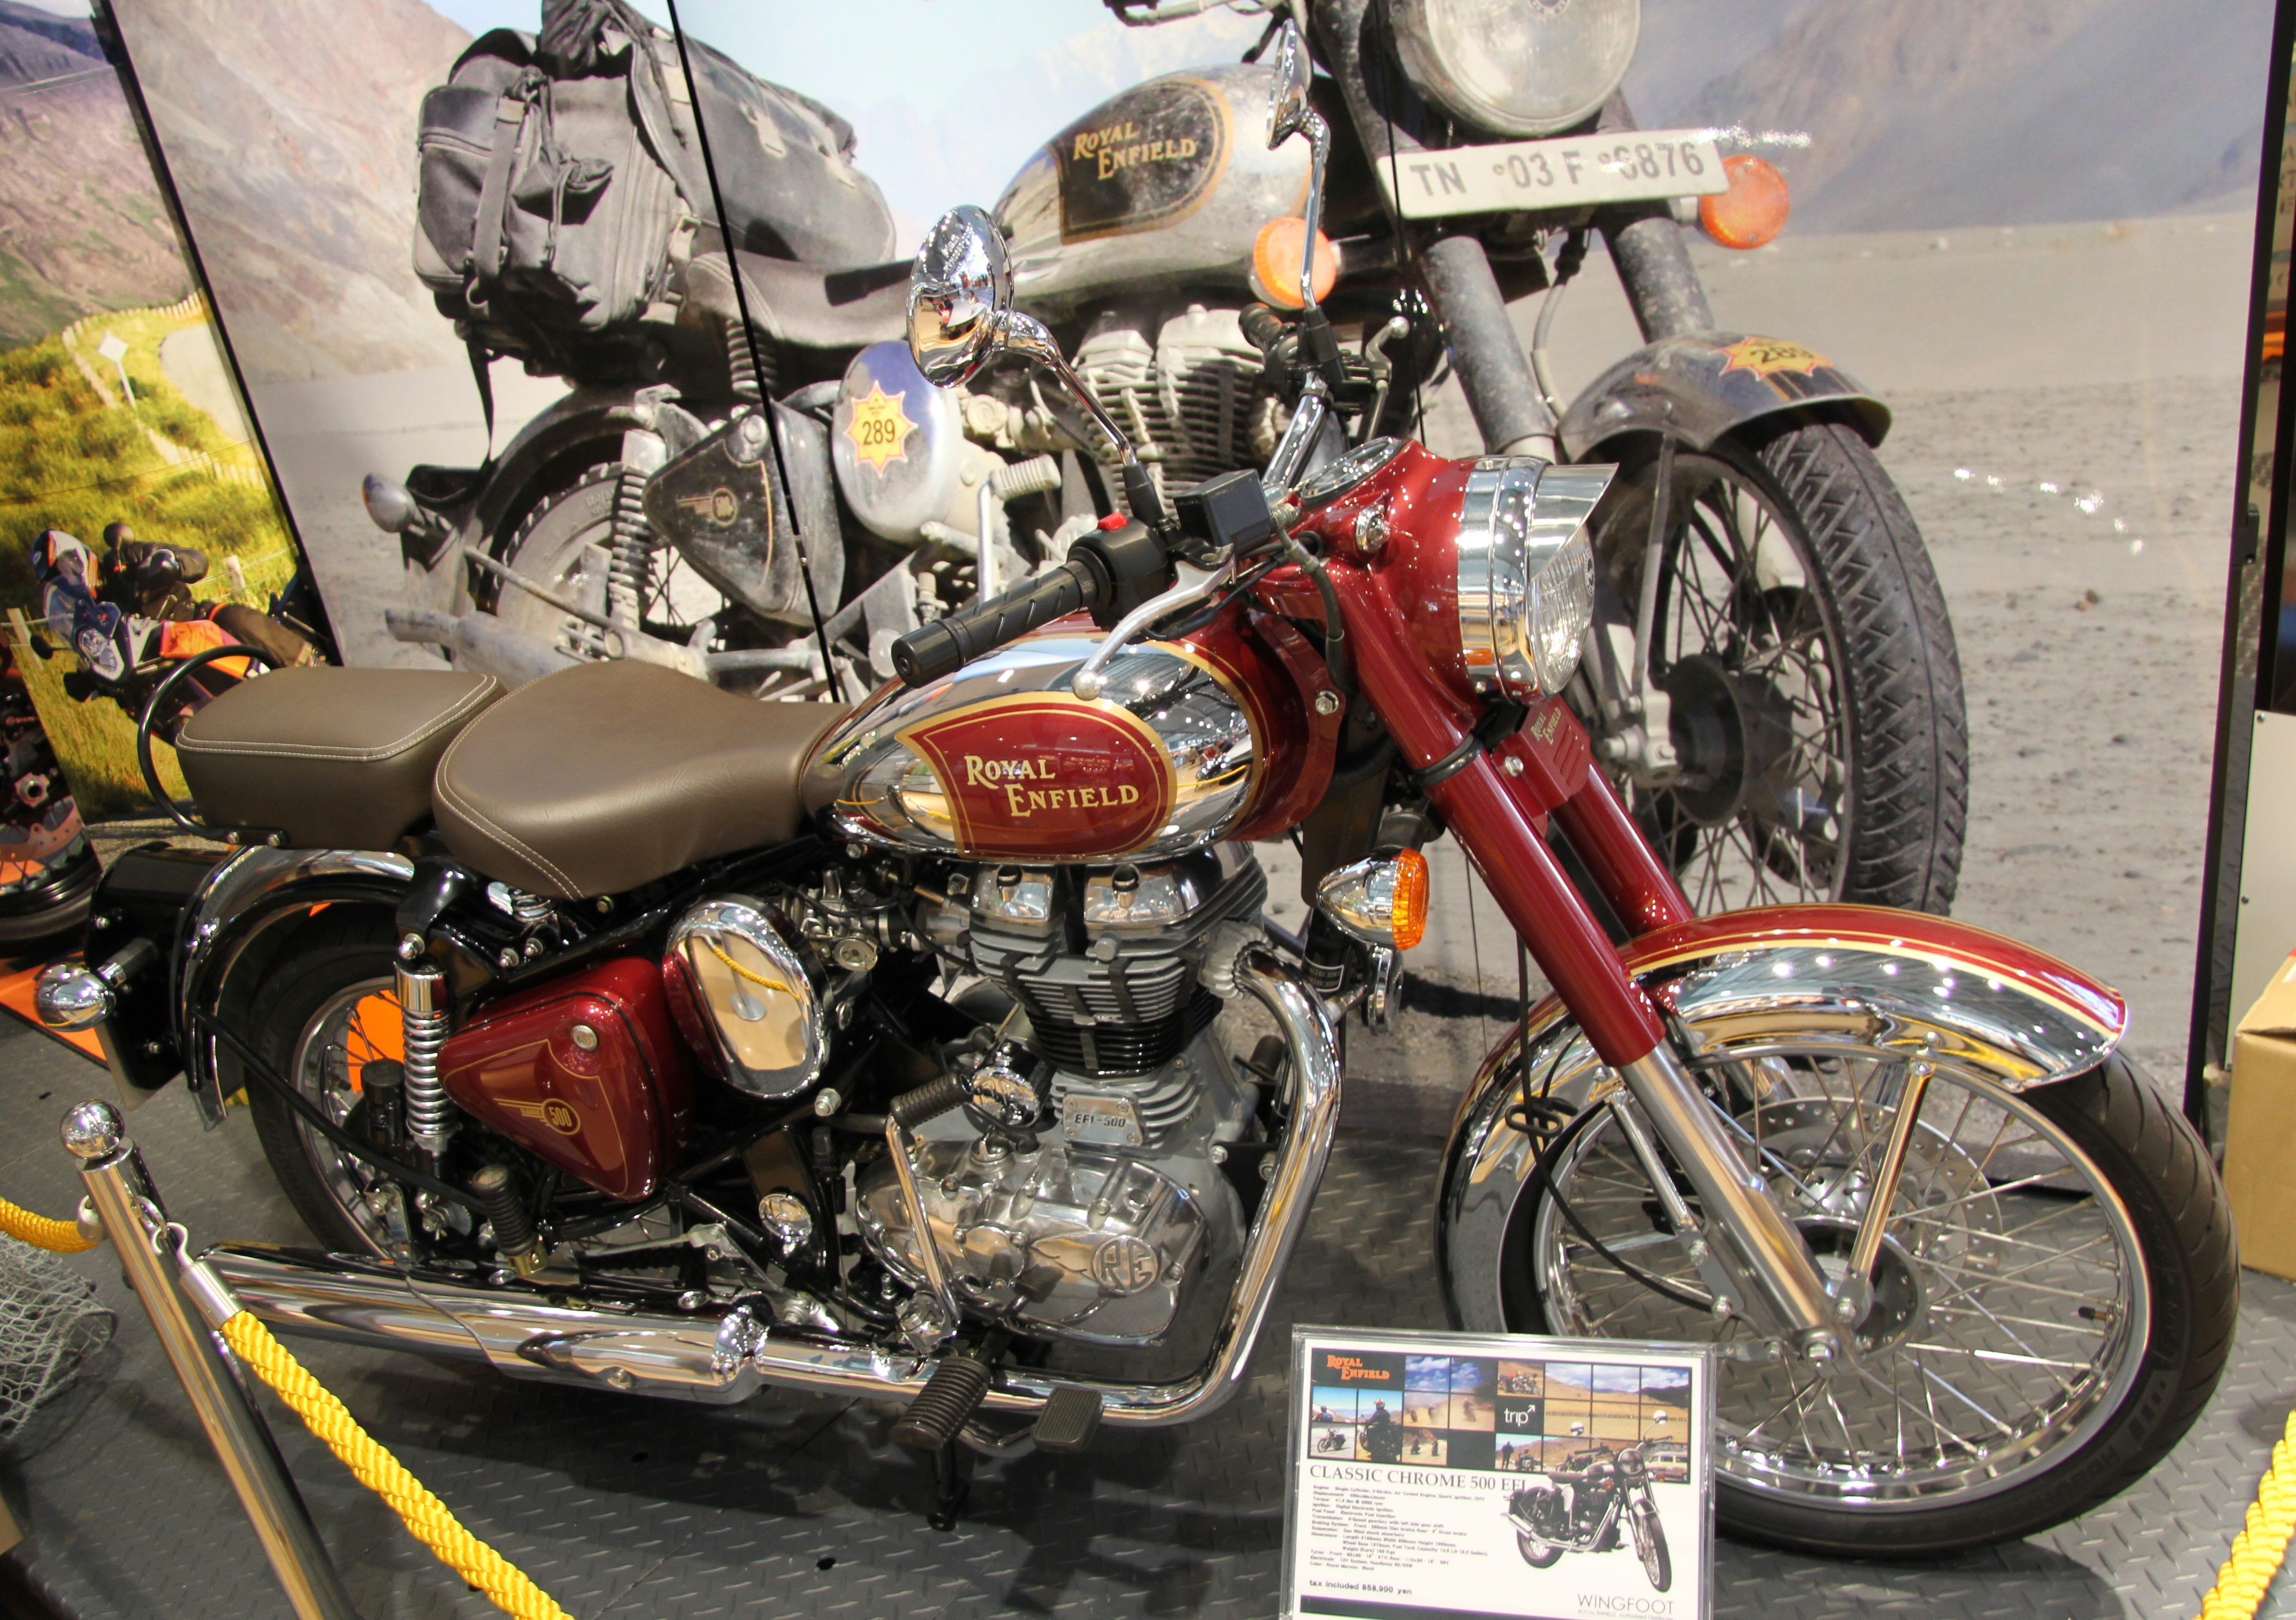 Royal Enfield Classic Chrome Modified File:royal Enfield Classic